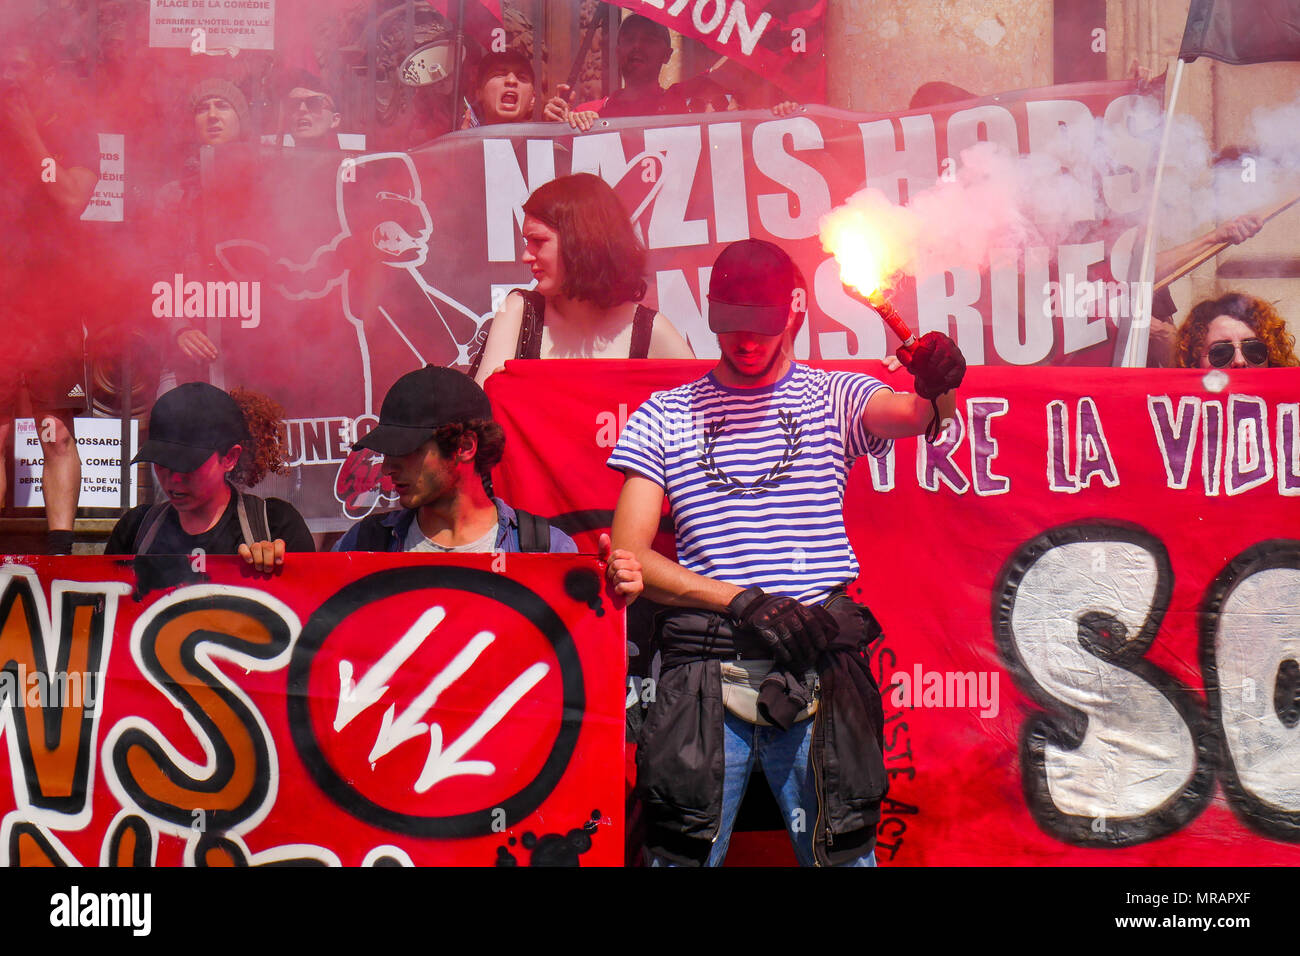 Lyon France 26th May 2018 Anarchists And Antifascist